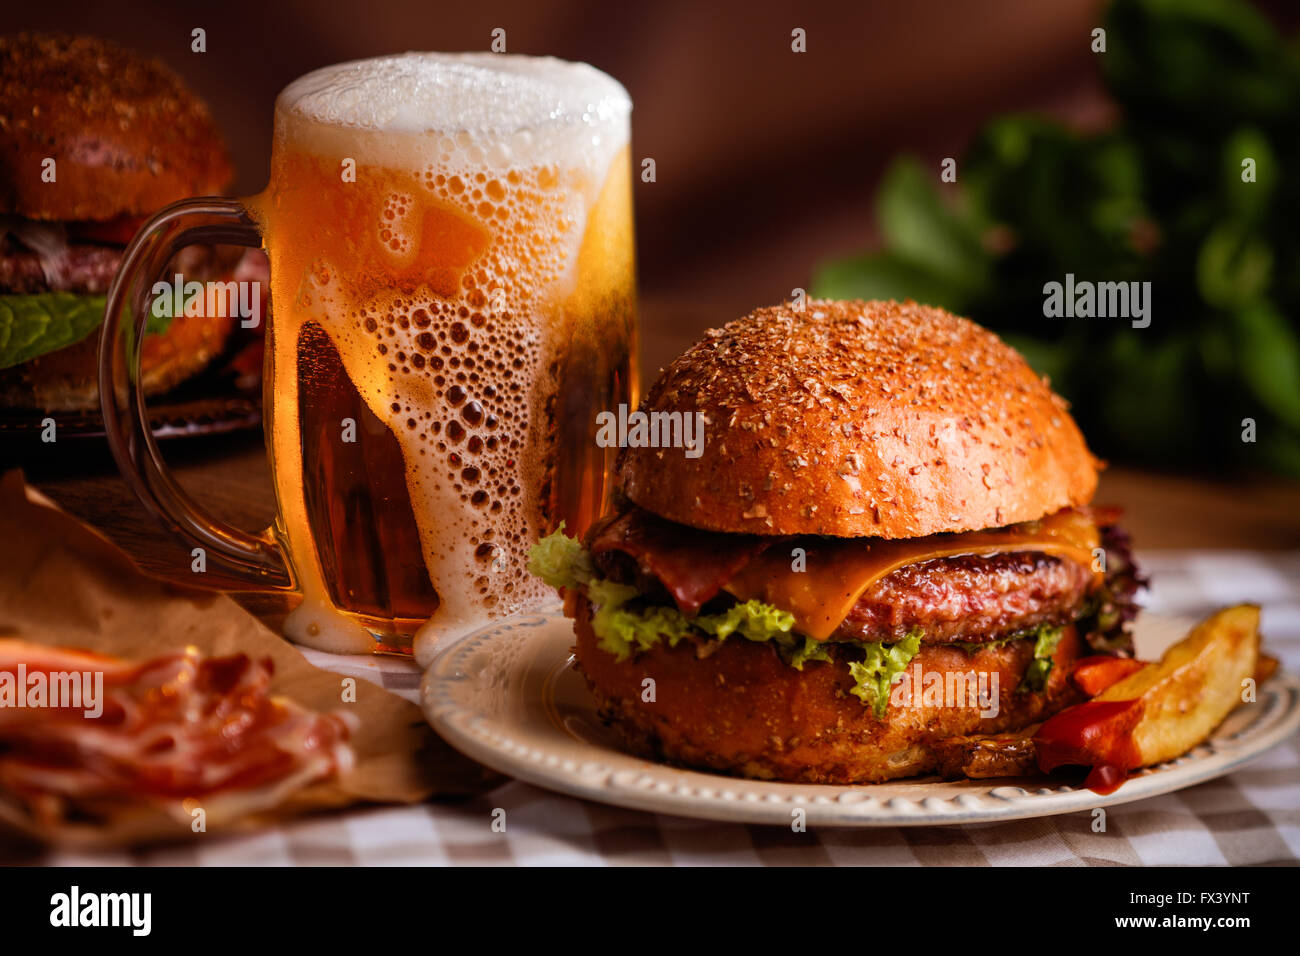 dinner with burger and beer - Stock Image